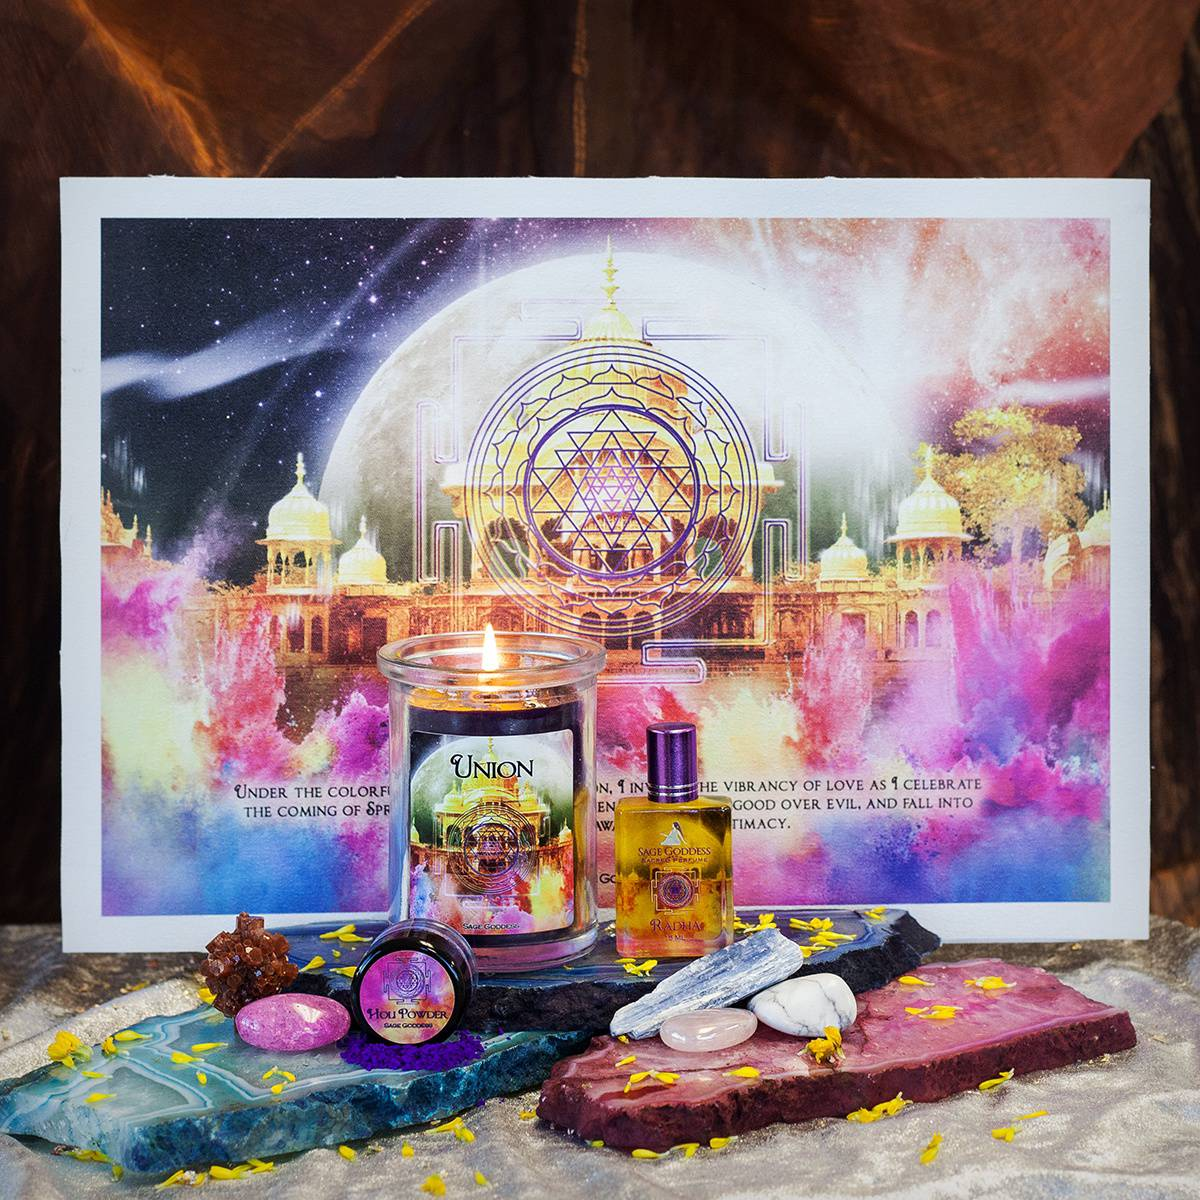 Indian Full Moon- Holi Festival of Love 1_31 featured